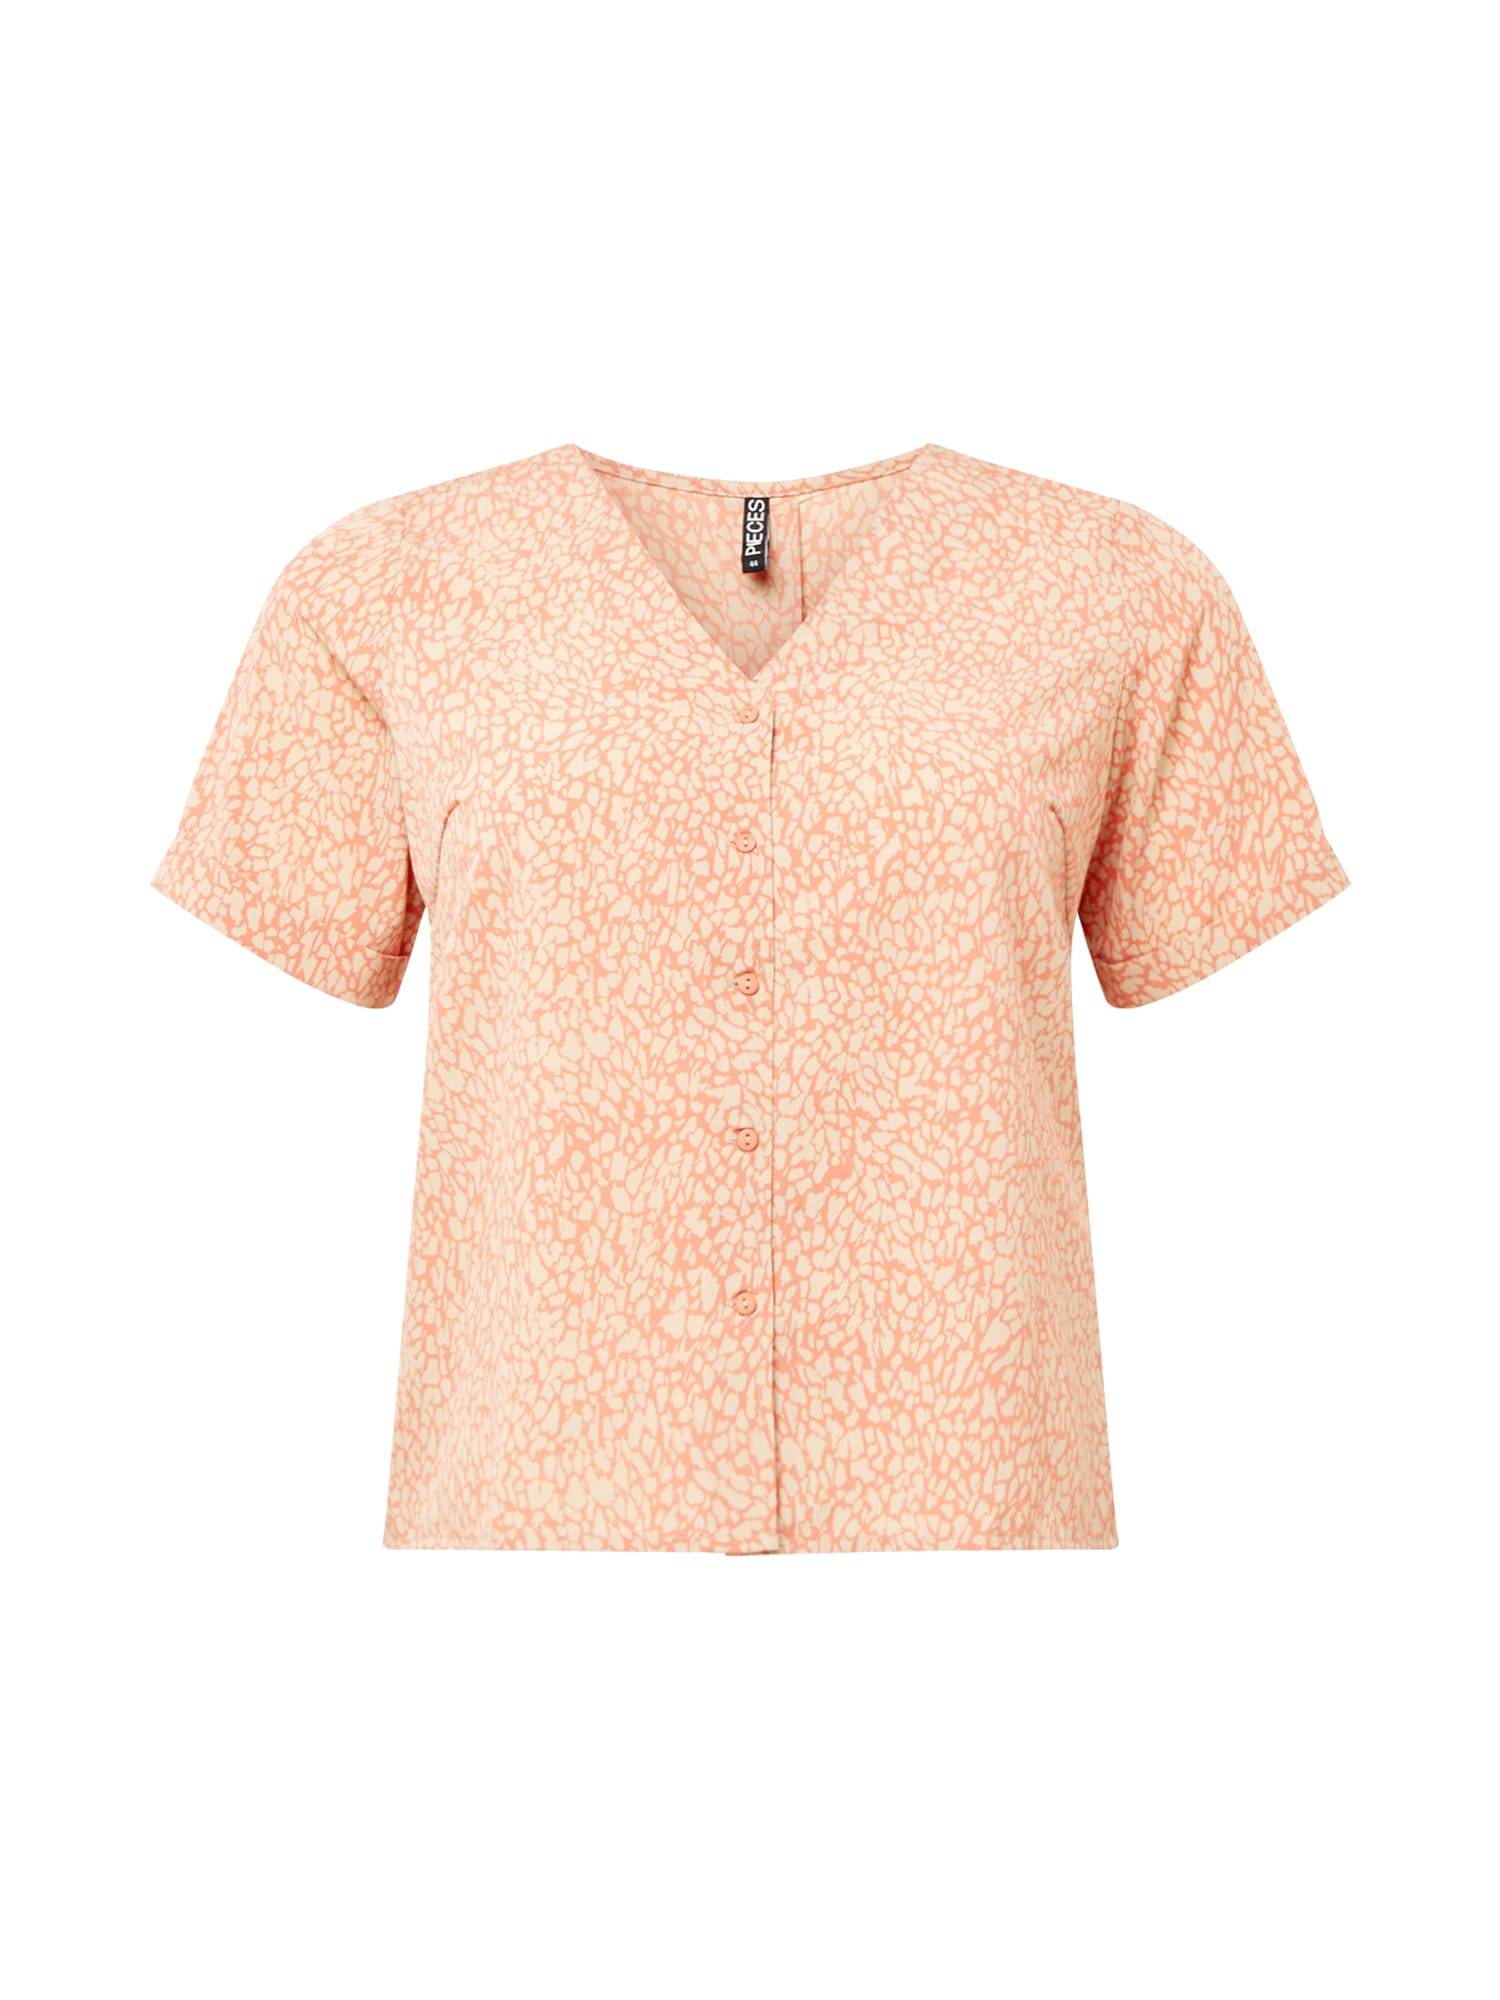 PIECES (Curve) Chemisier 'GILBERTA'  - Orange - Taille: 52 - female